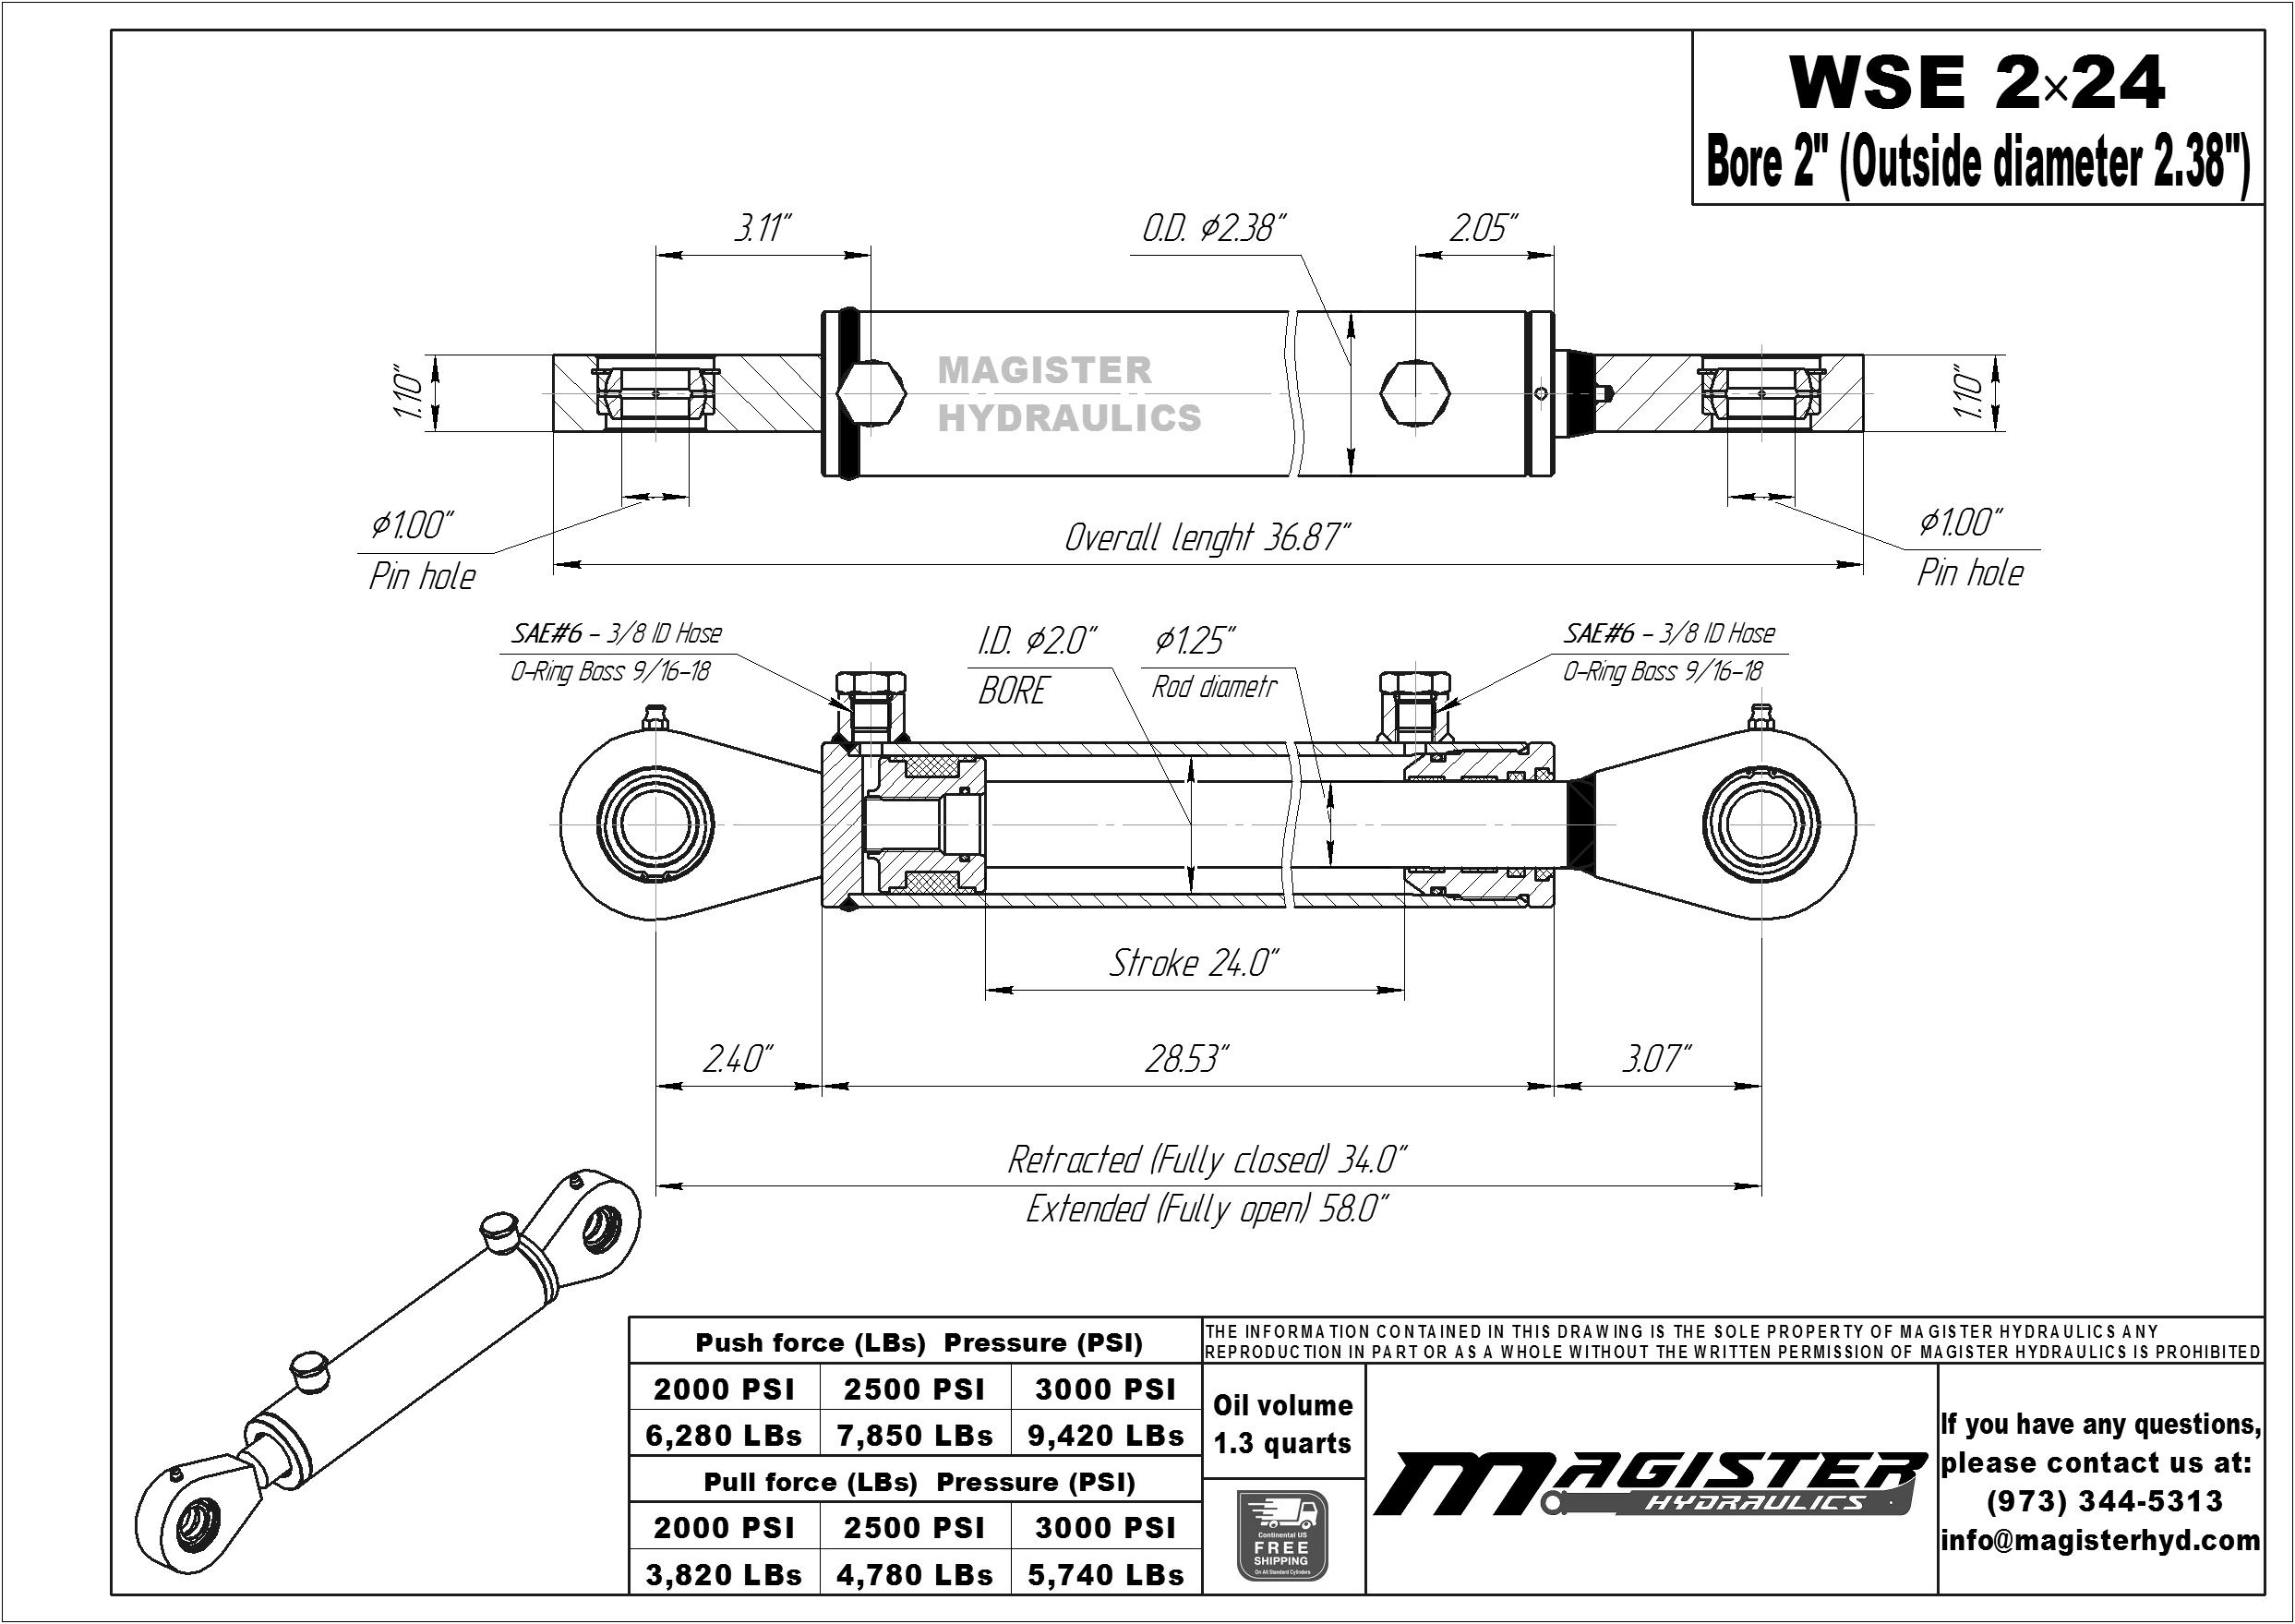 2 bore x 24 stroke hydraulic cylinder, welded swivel eye double acting cylinder | Magister Hydraulics